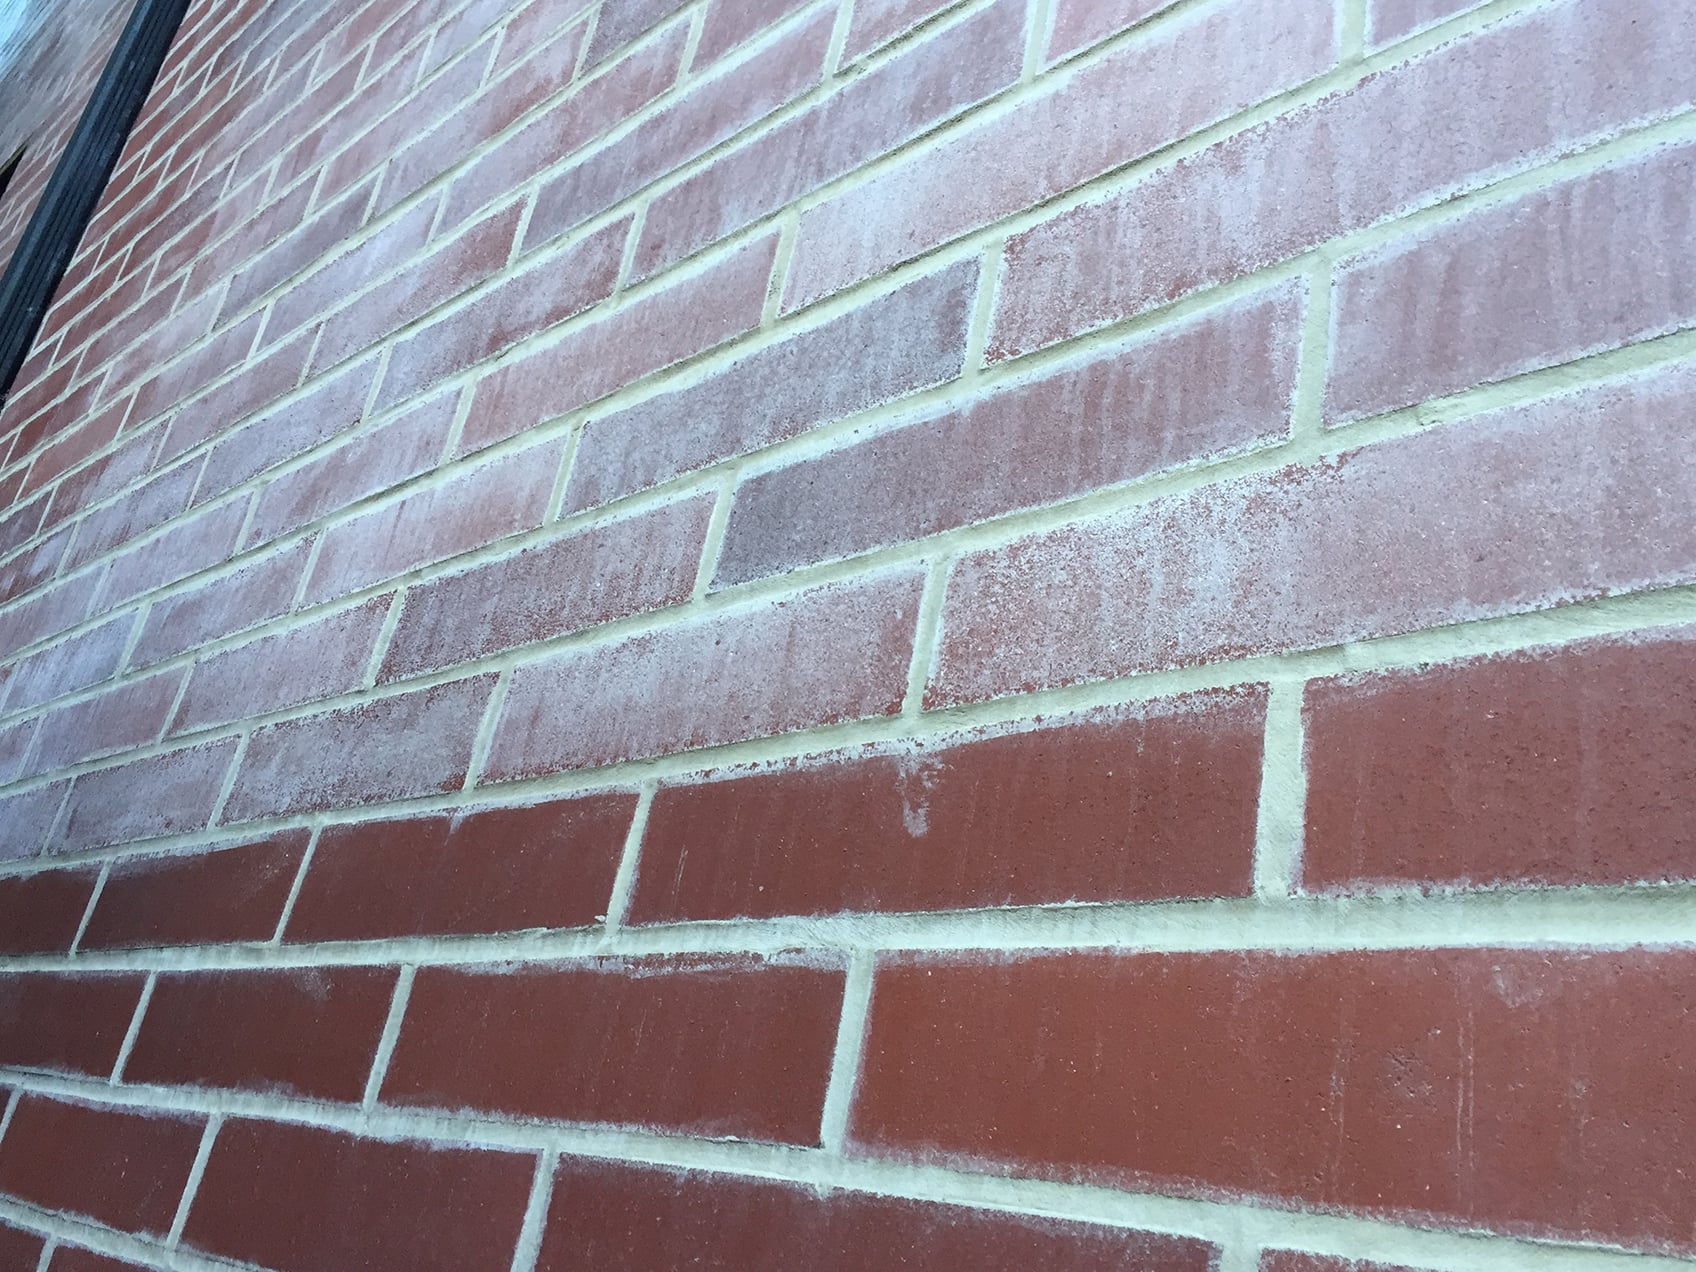 A brick wall with a milky haze on the top section and no haze on the bottom half